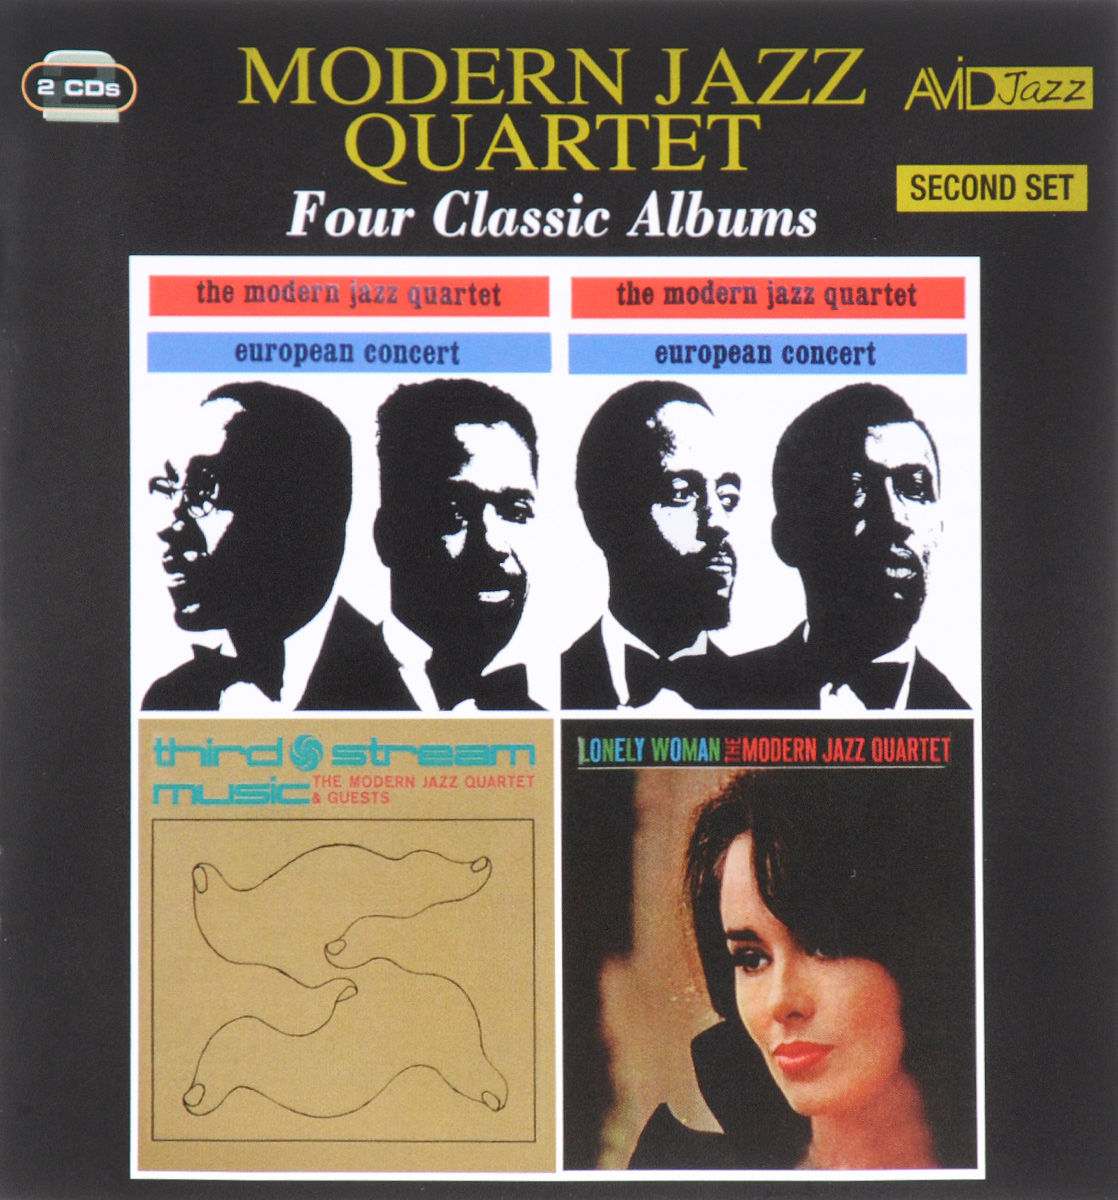 The Modern Jazz Quartet,The Guests Avid Jazz. Modern Jazz Quartet. Four Classic Albums. Second Set (2 CD) vic firth mjc1 modern jazz collection 1